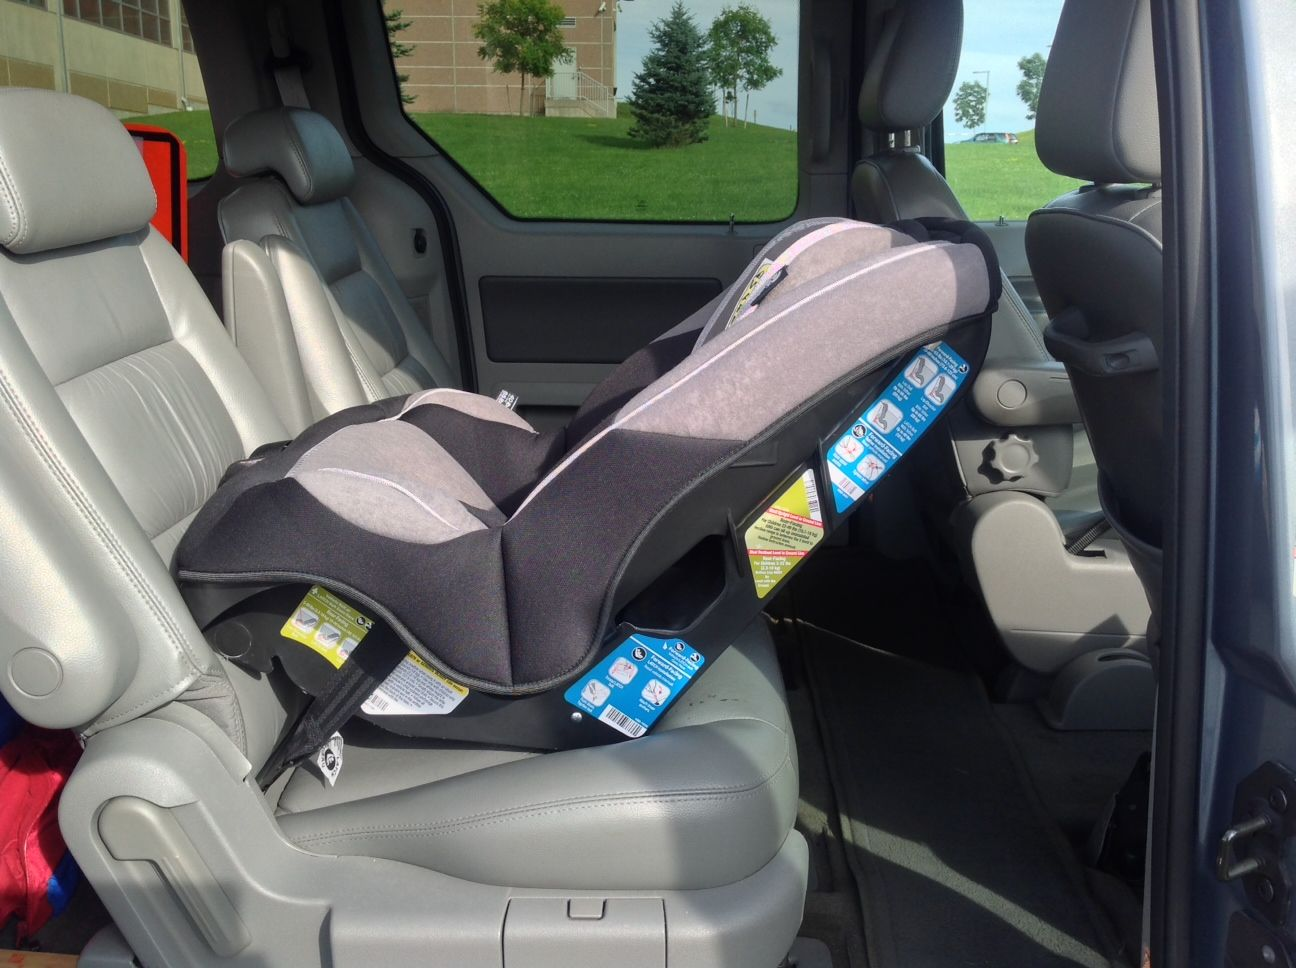 Convertible Carseats fit guide for rear-facing | Car seats ...